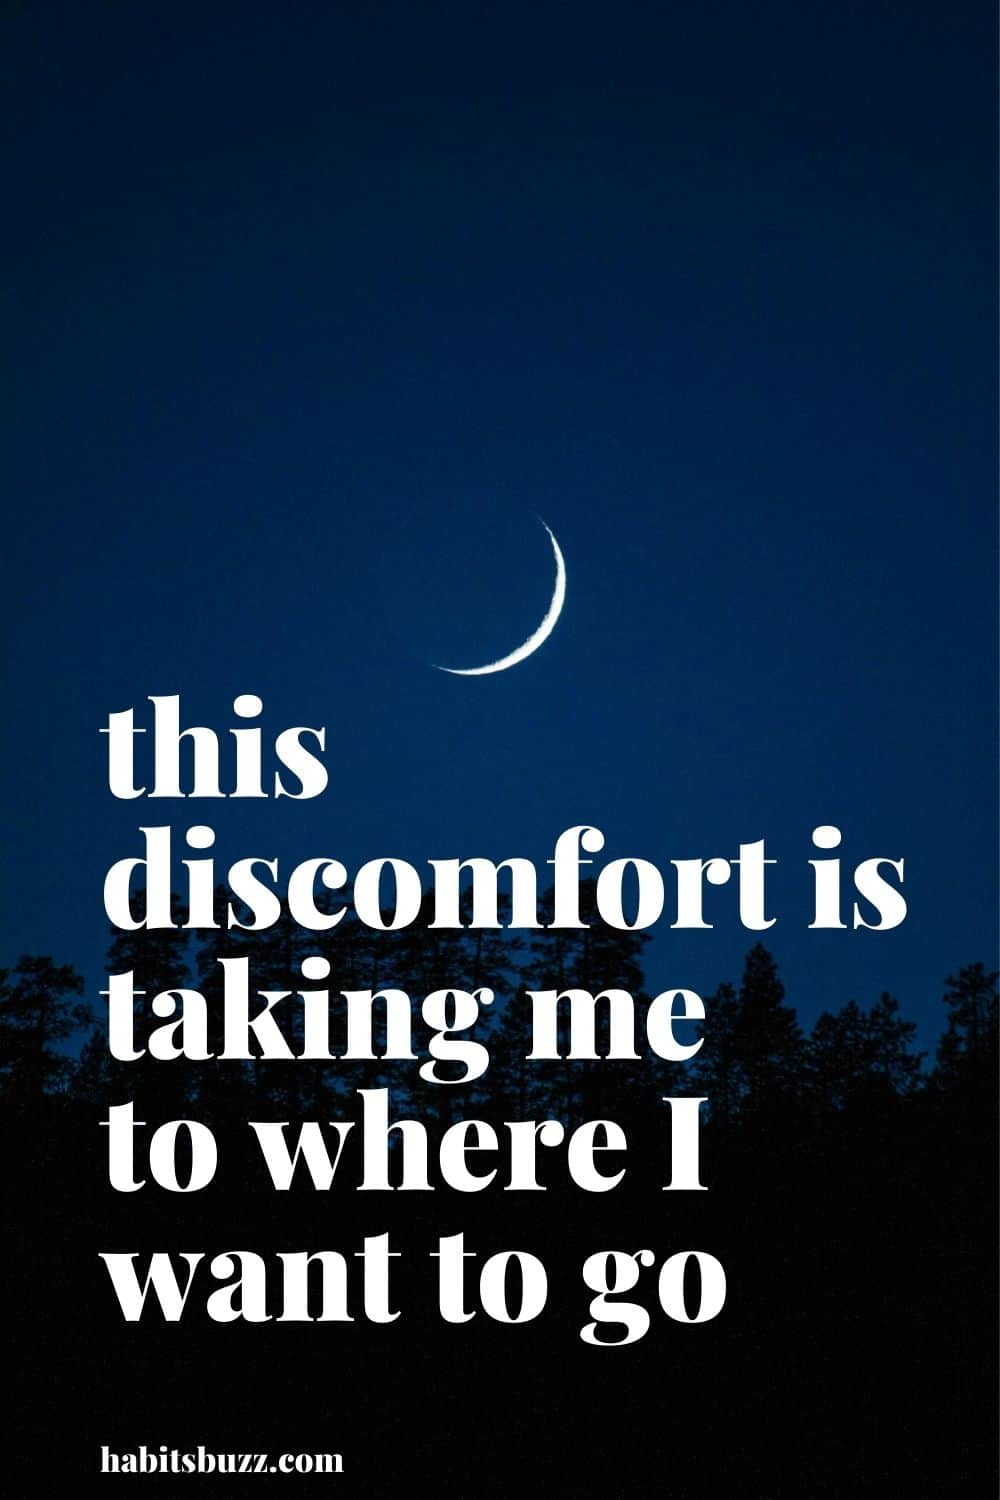 this discomfort is taking me to where I want to go - mantras to get through bad days in life